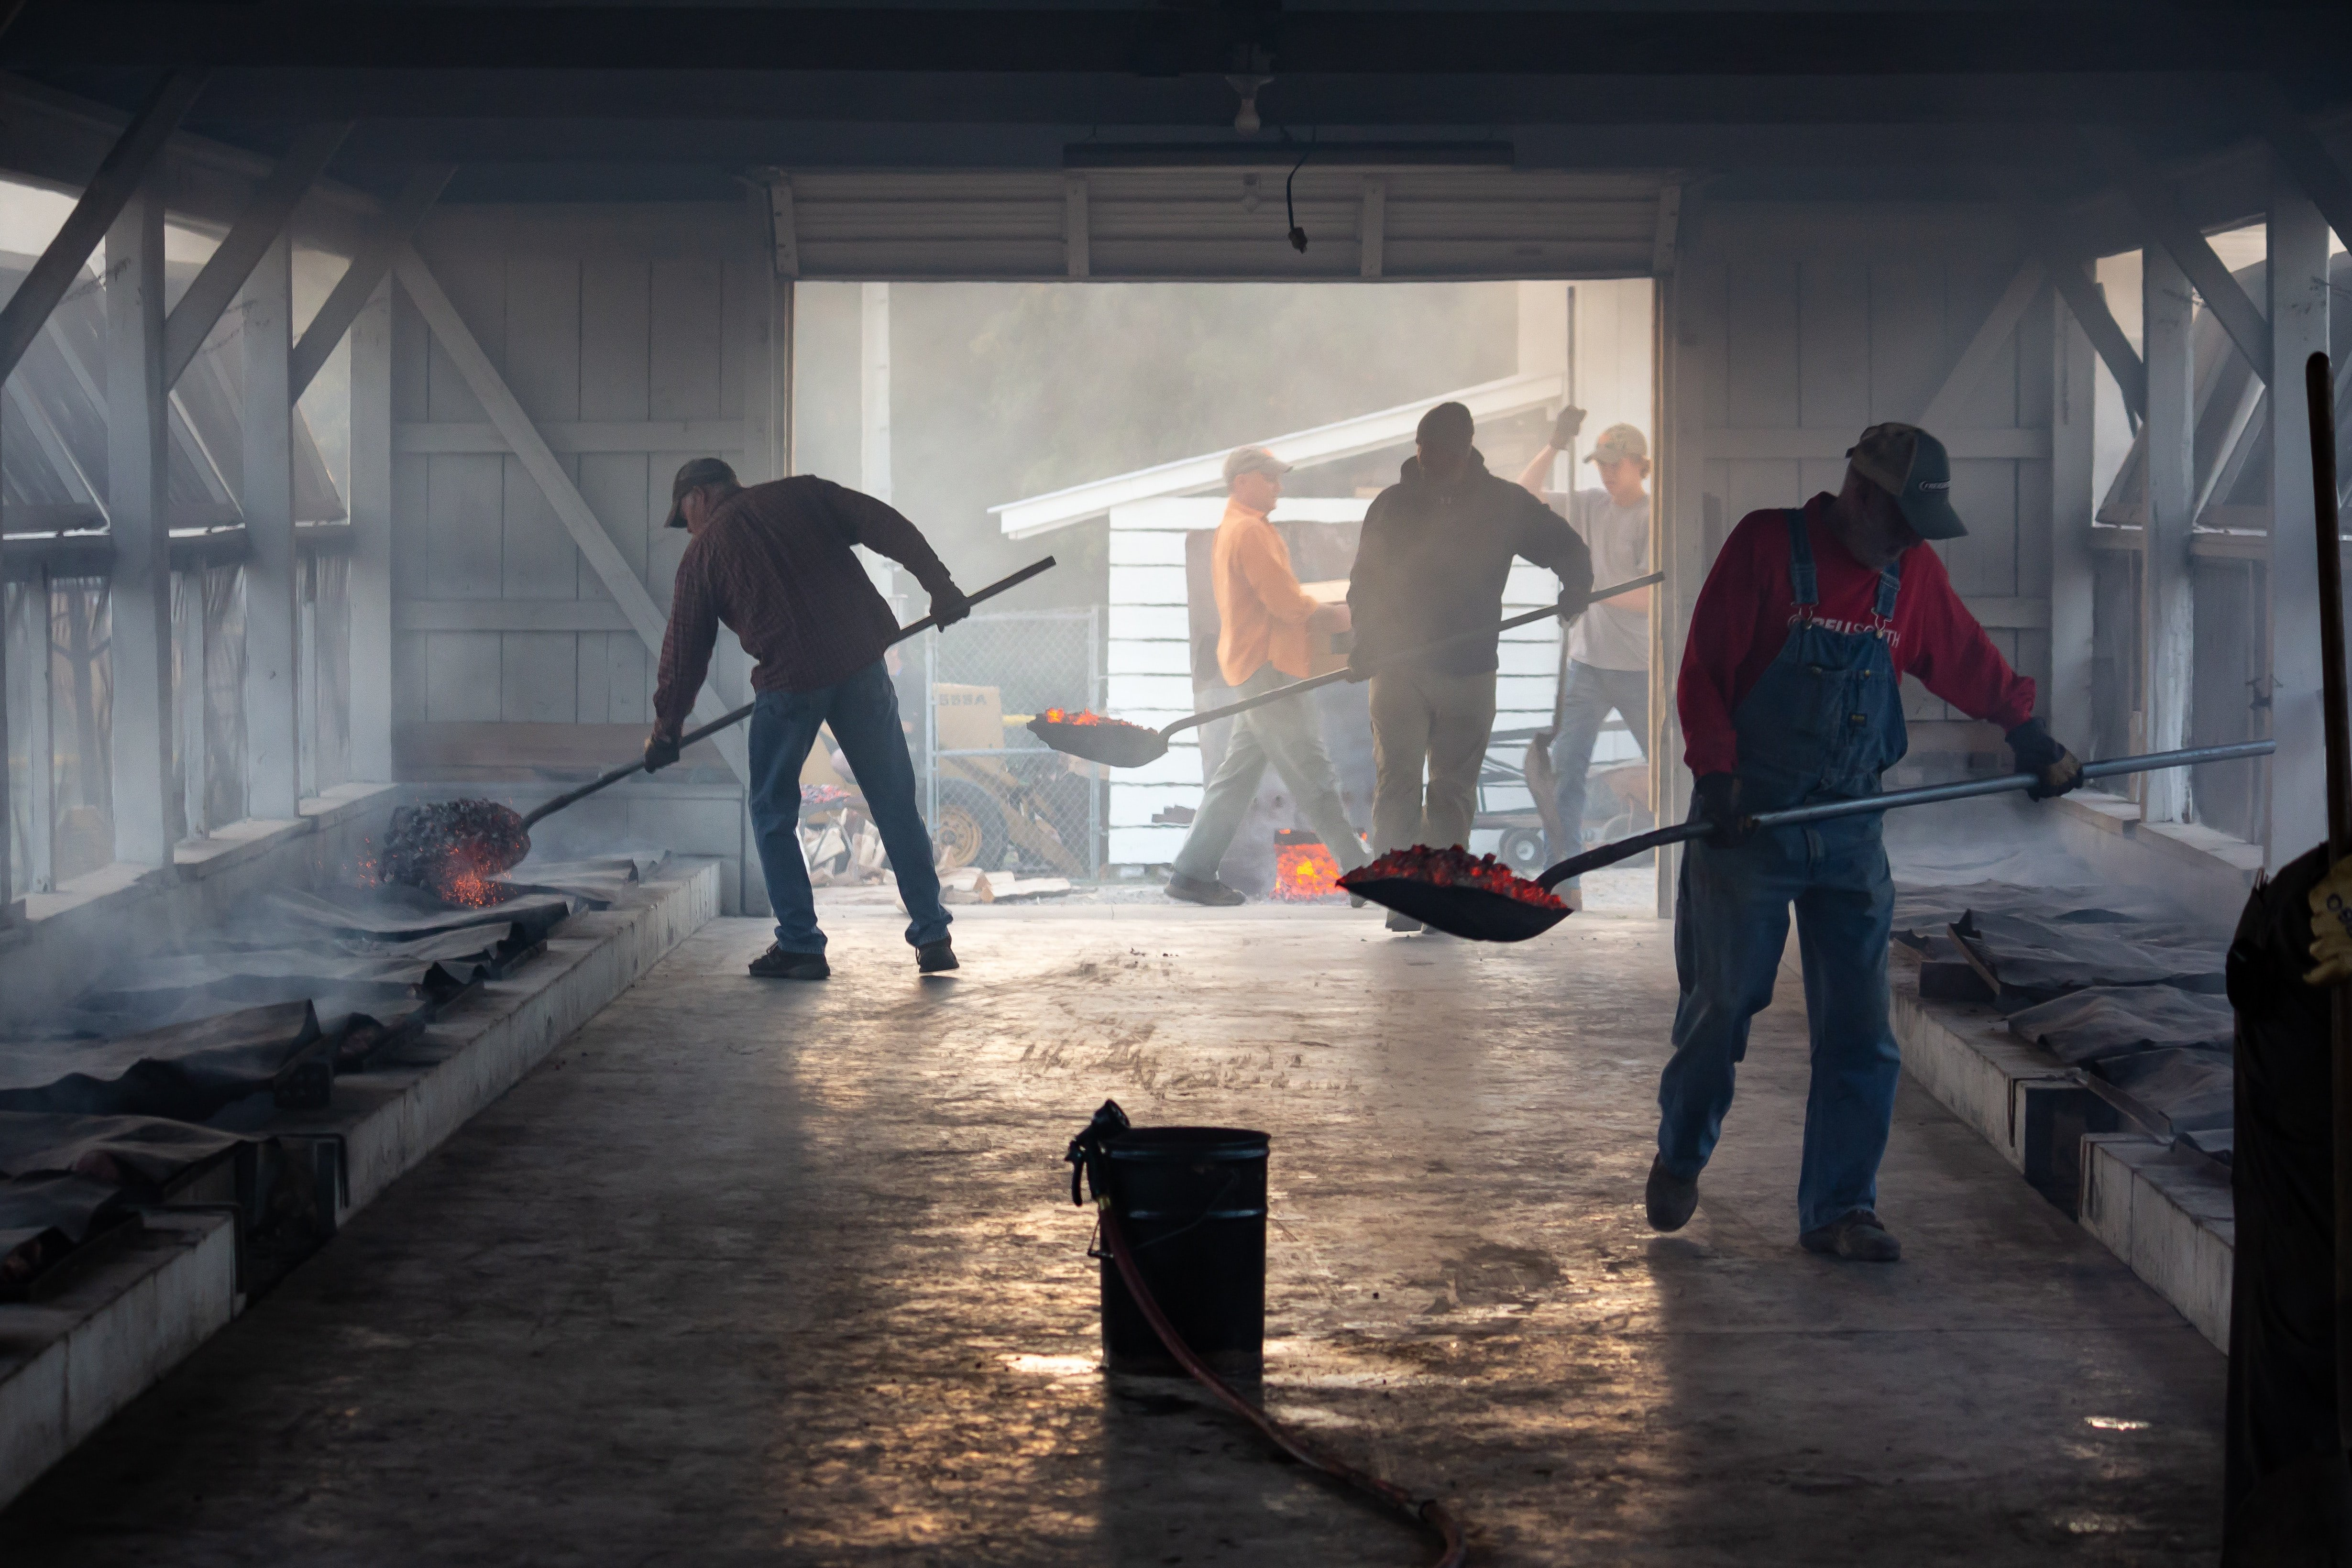 Factory workers on duty | Source: Unsplash.com